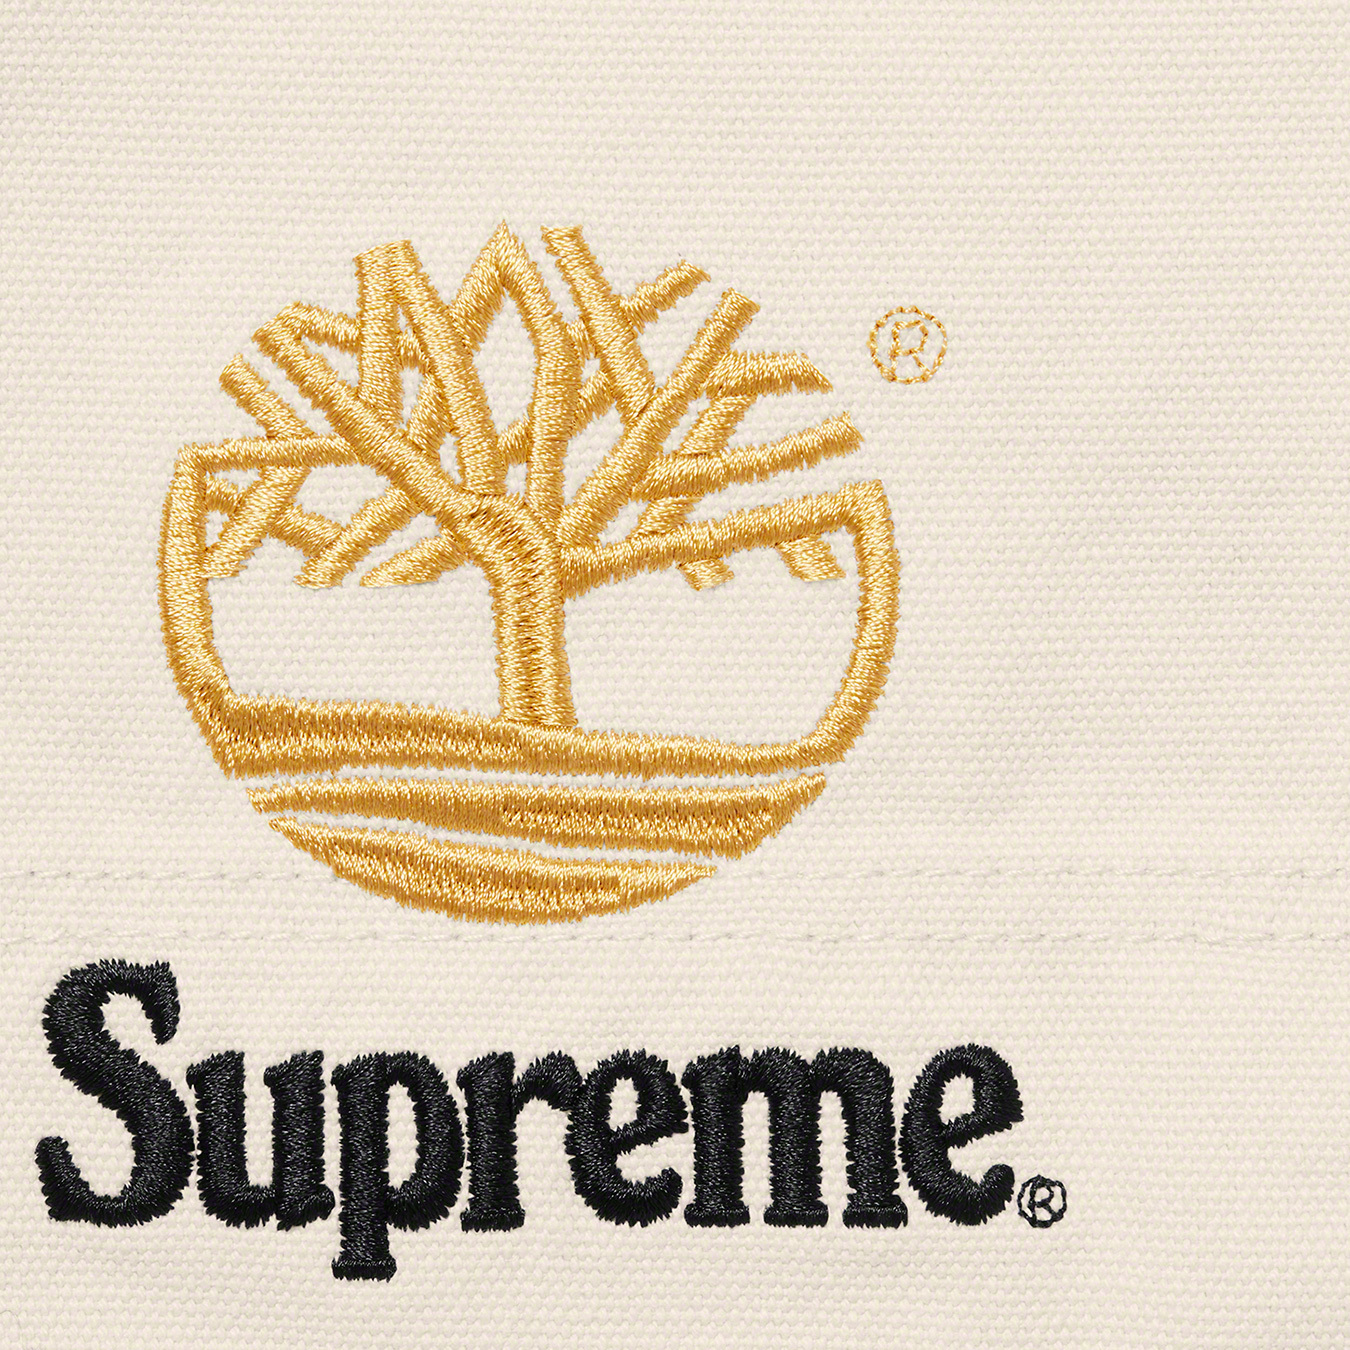 supreme-timberland-21ss-collaboration-release-20210515-double-knee-painter-pant